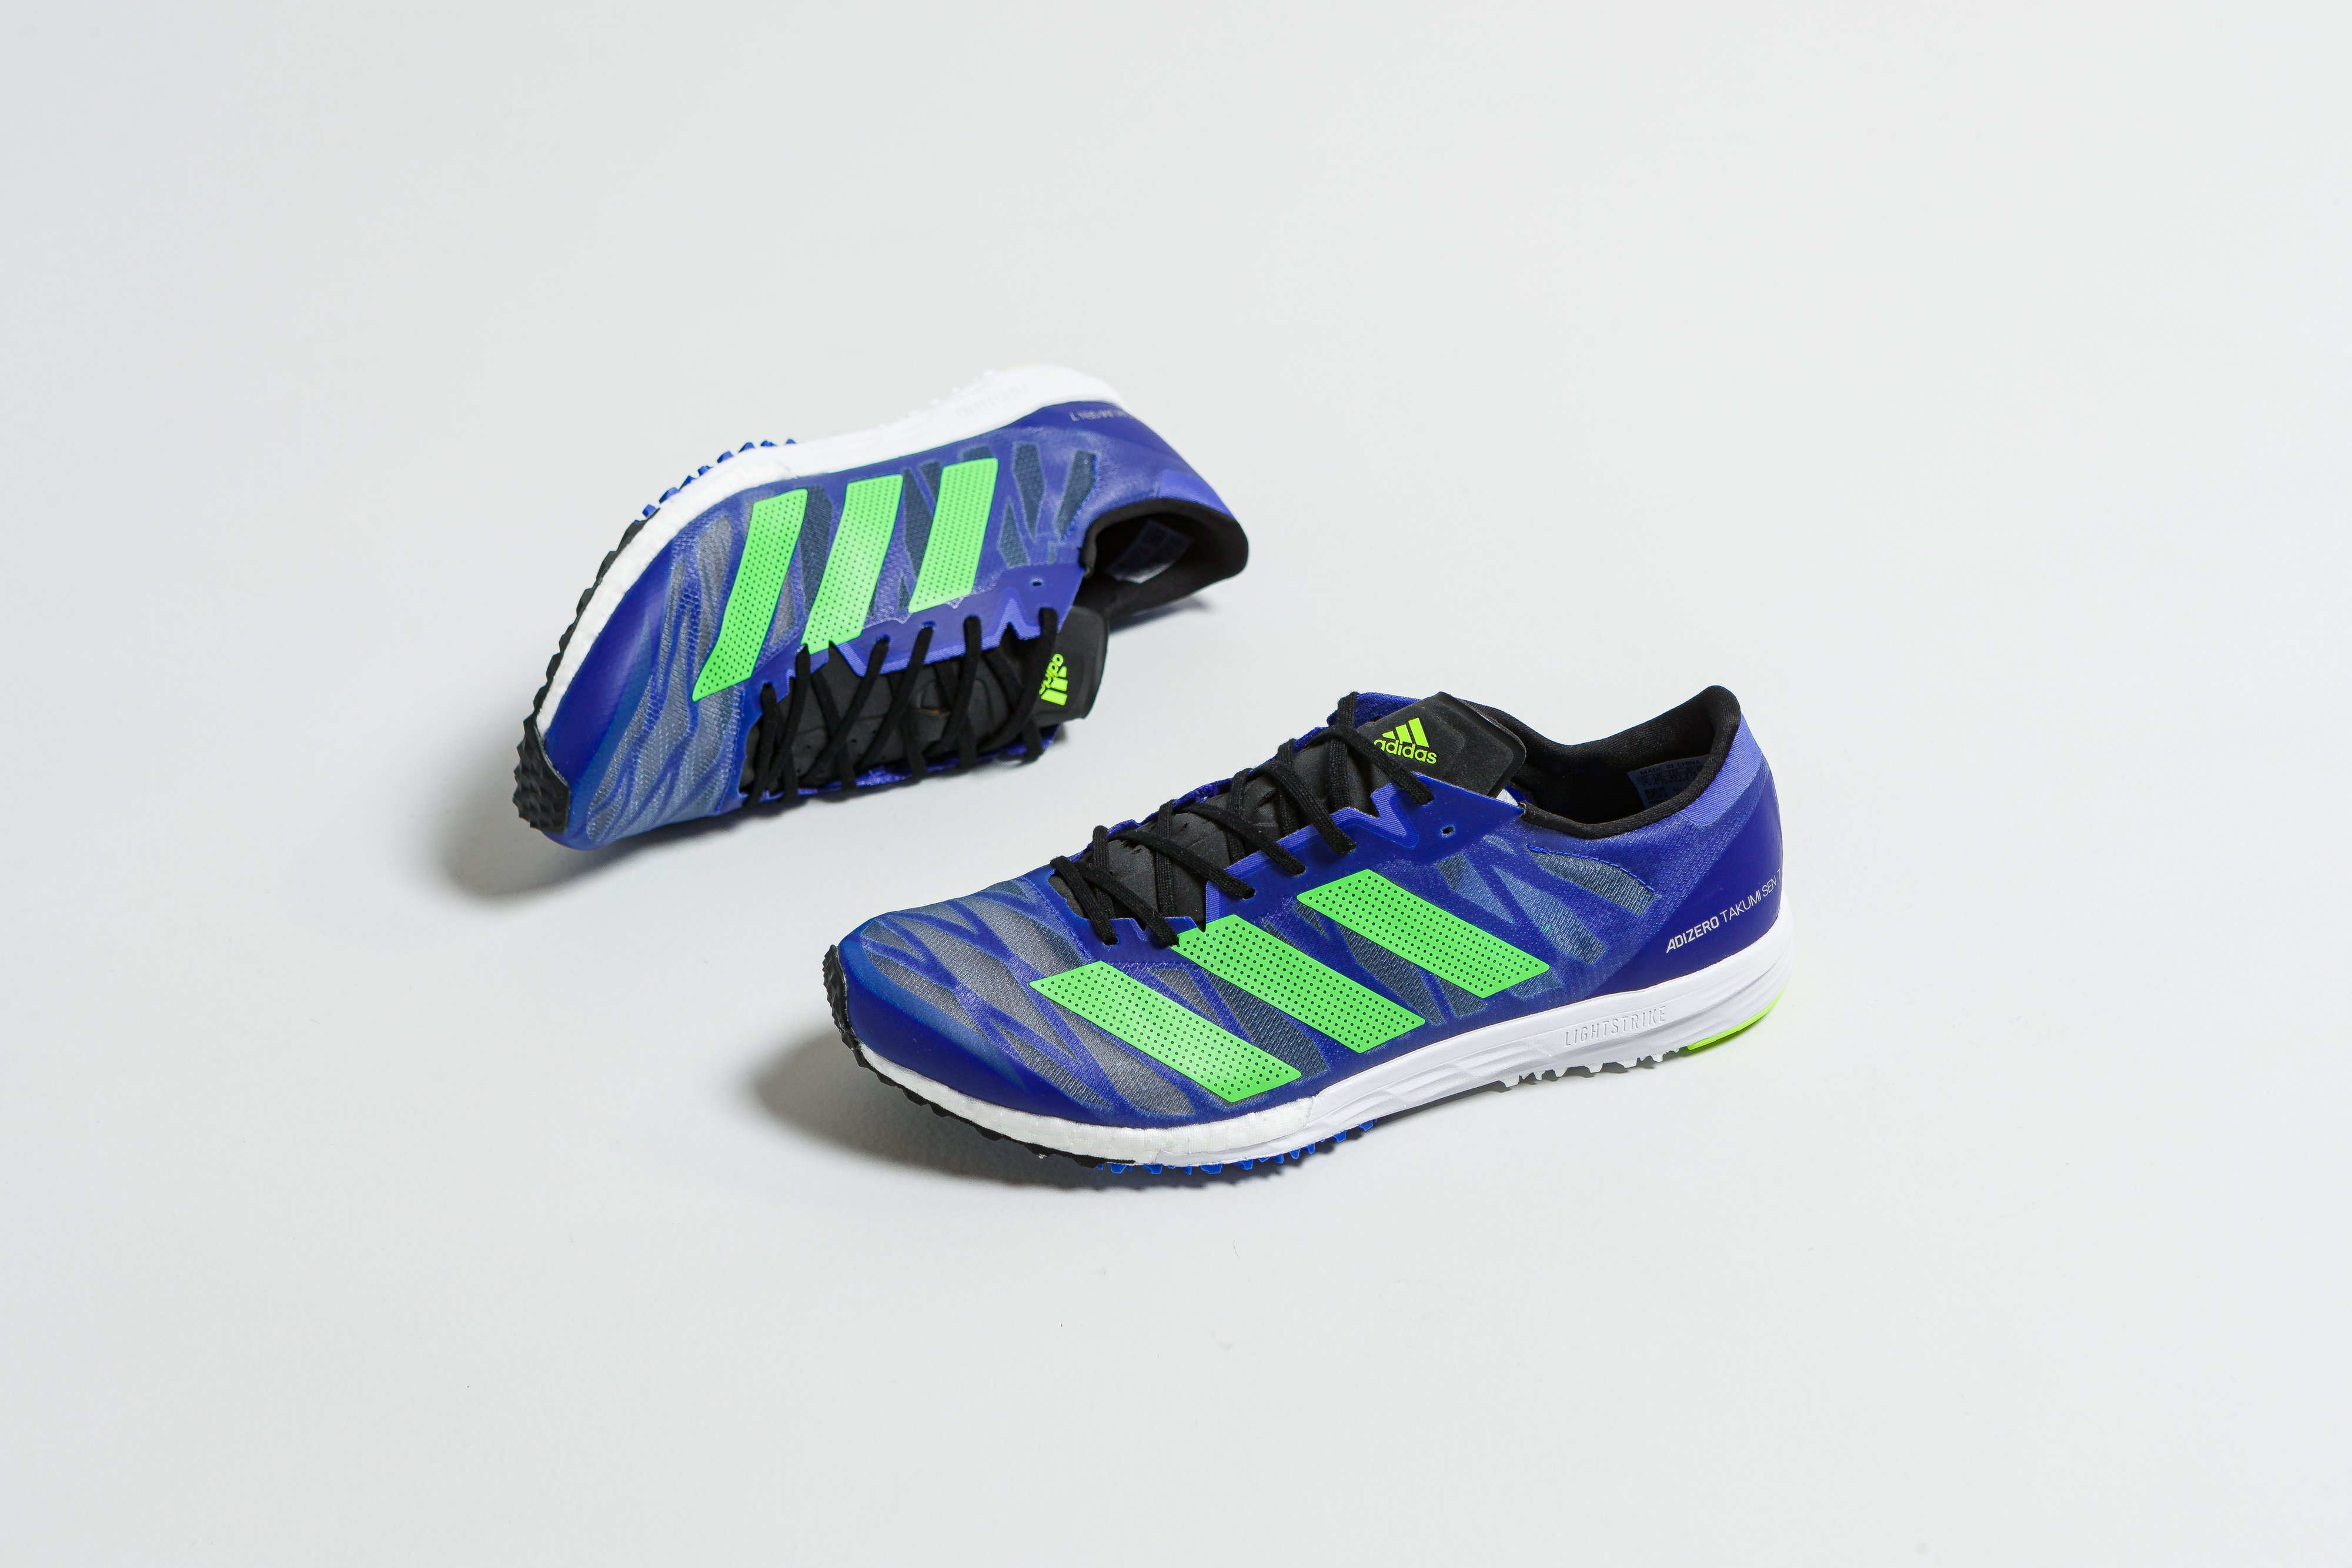 adidas New Race-Ready Sonic Ink, Screaming Green Pack